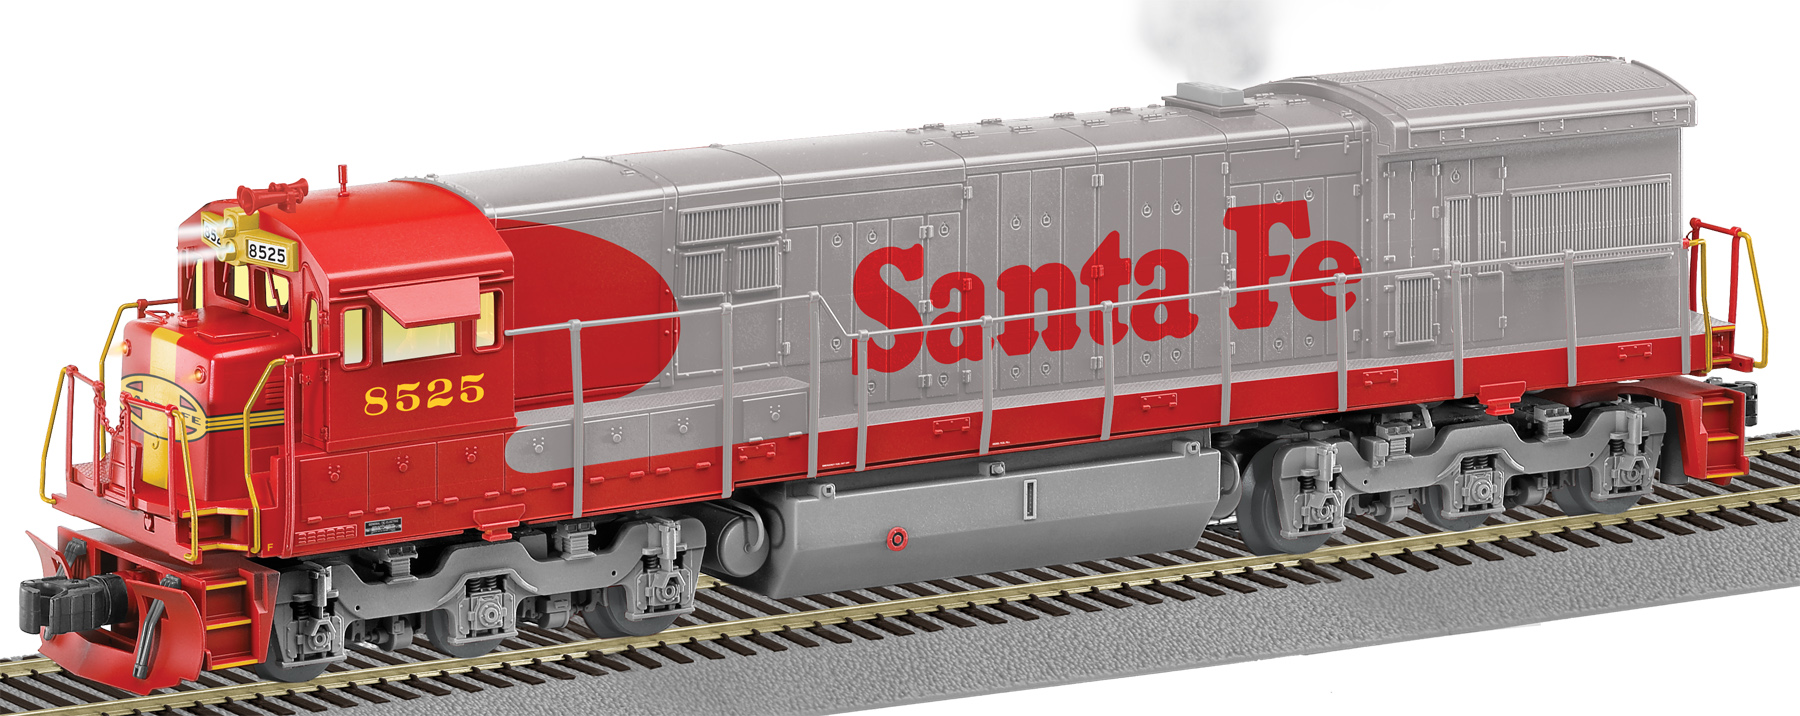 Santa Fe Train Coloring Pages With LEGACY Scale U33C Diesel 8525